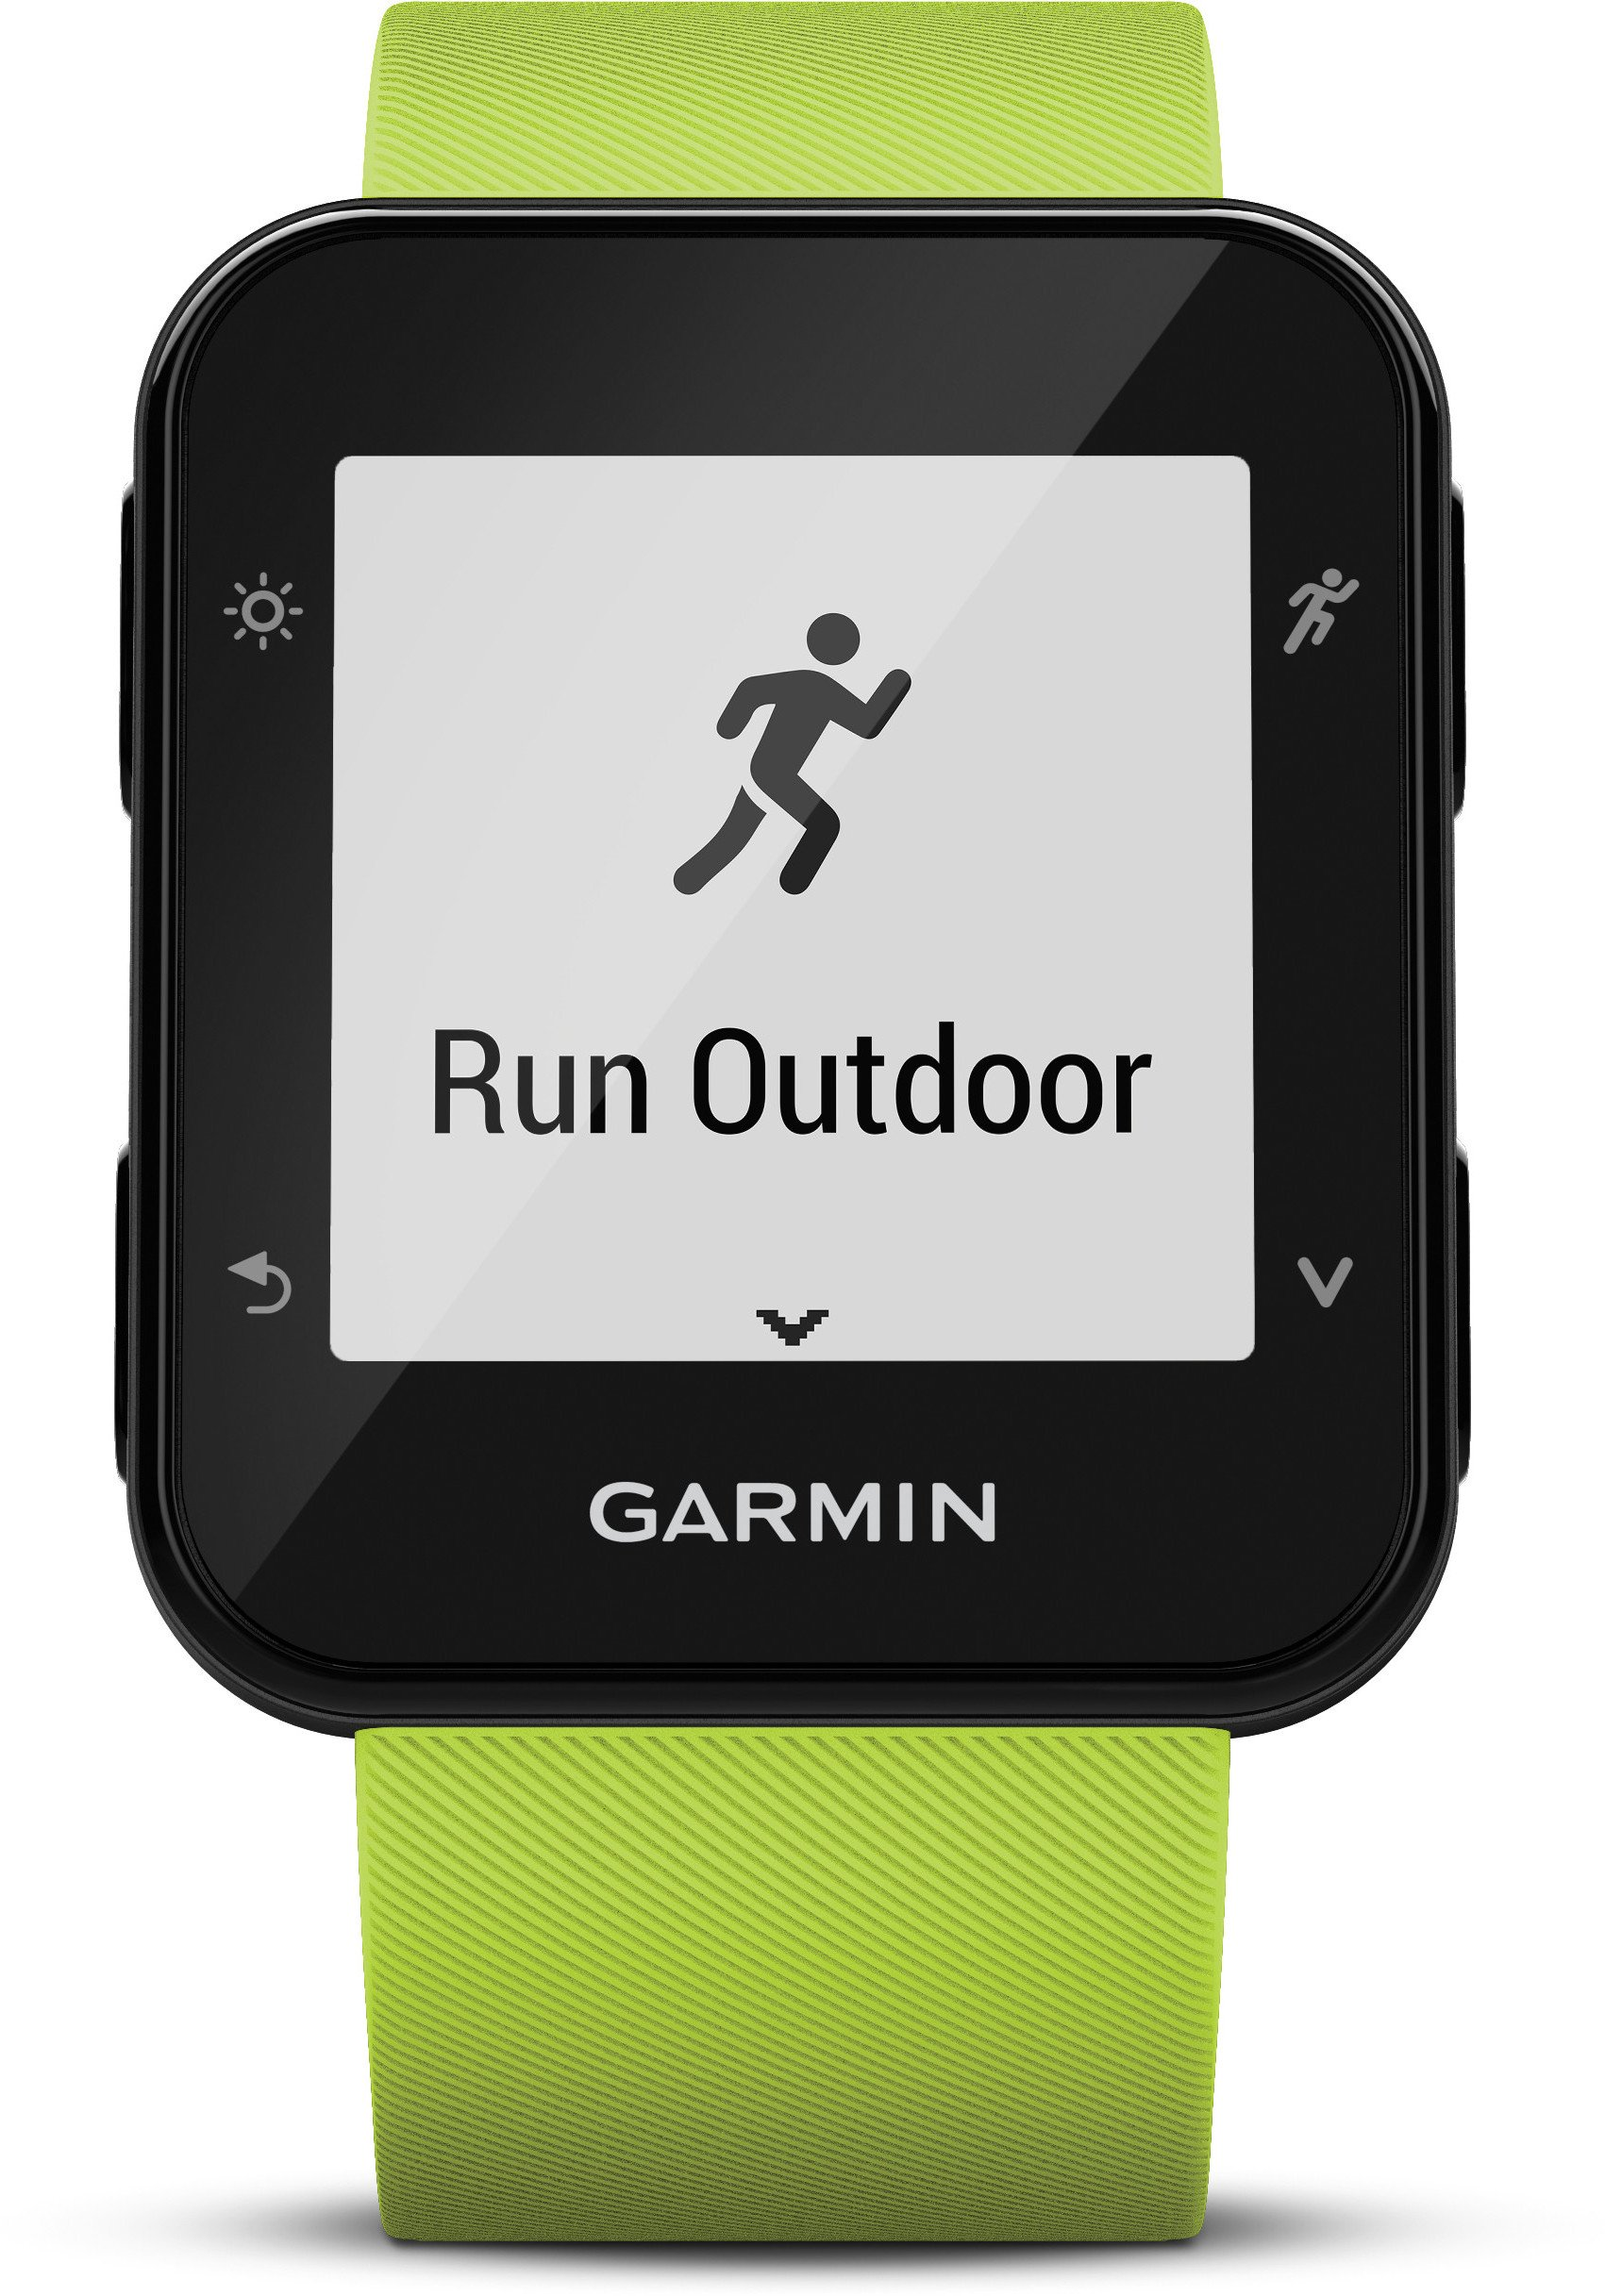 81U7 9D183L - Garmin Forerunner 35 GPS Running Watch with Wrist-Based Heart Rate and Workouts,010-01689-12